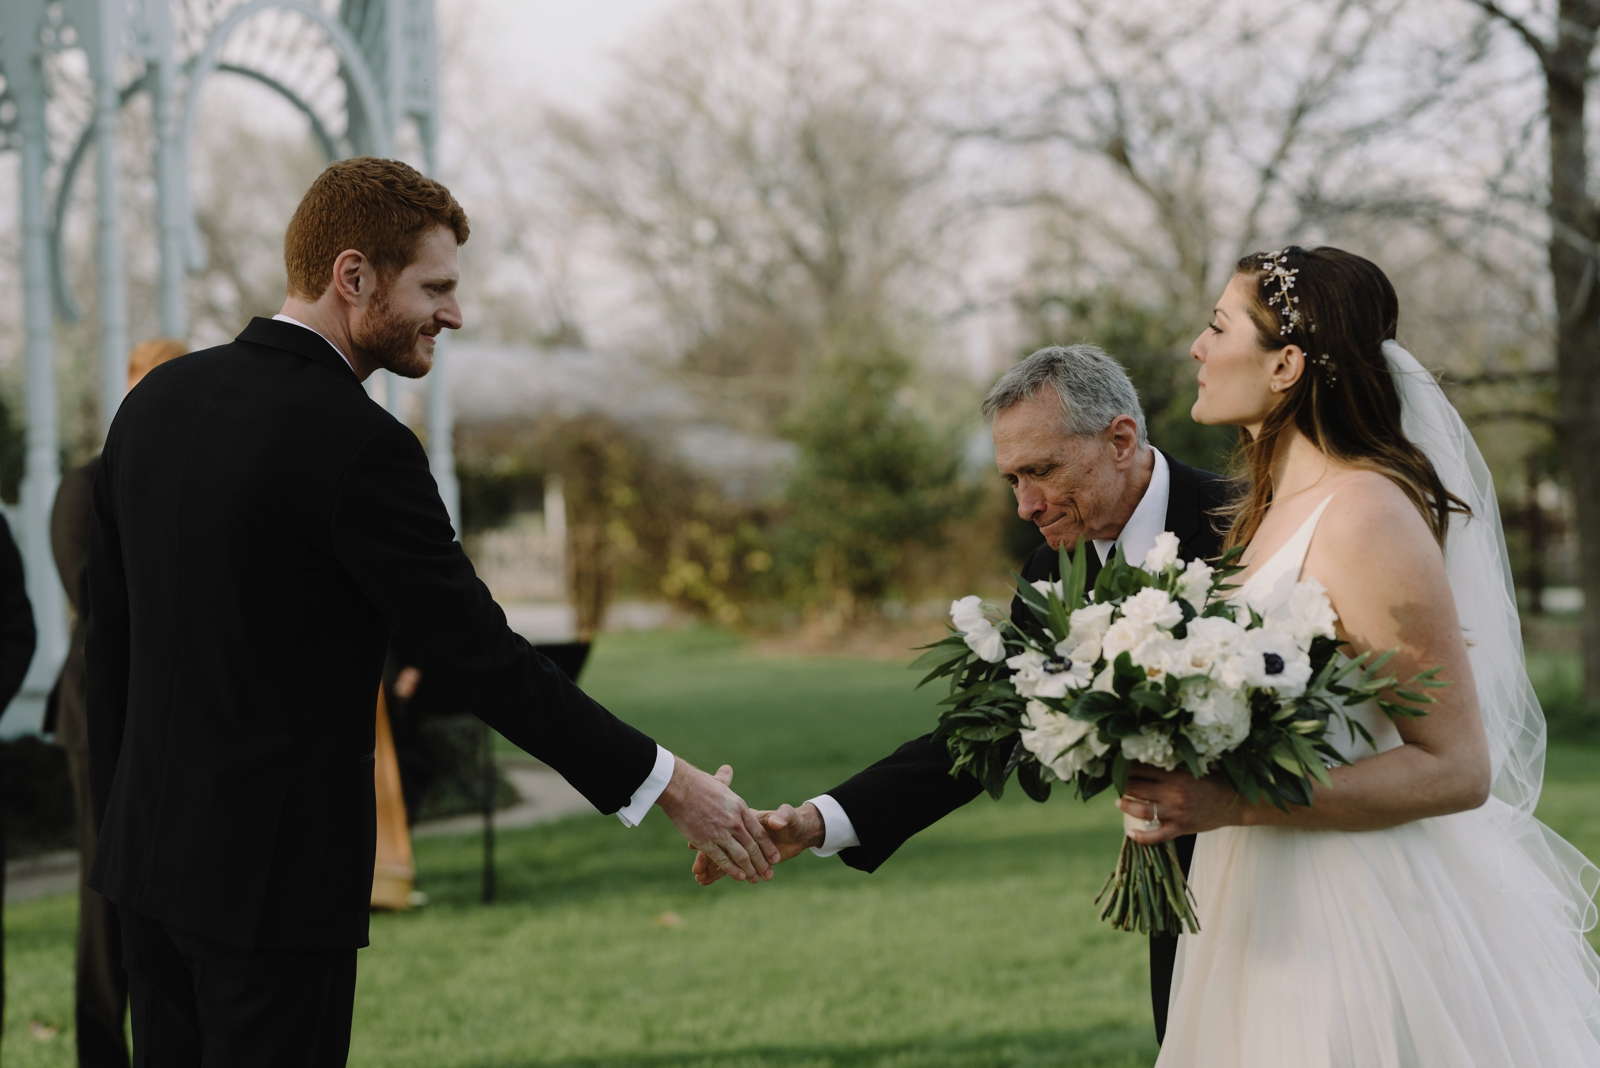 An emotional handshake between the father of the bride and groom at a wedding ceremony